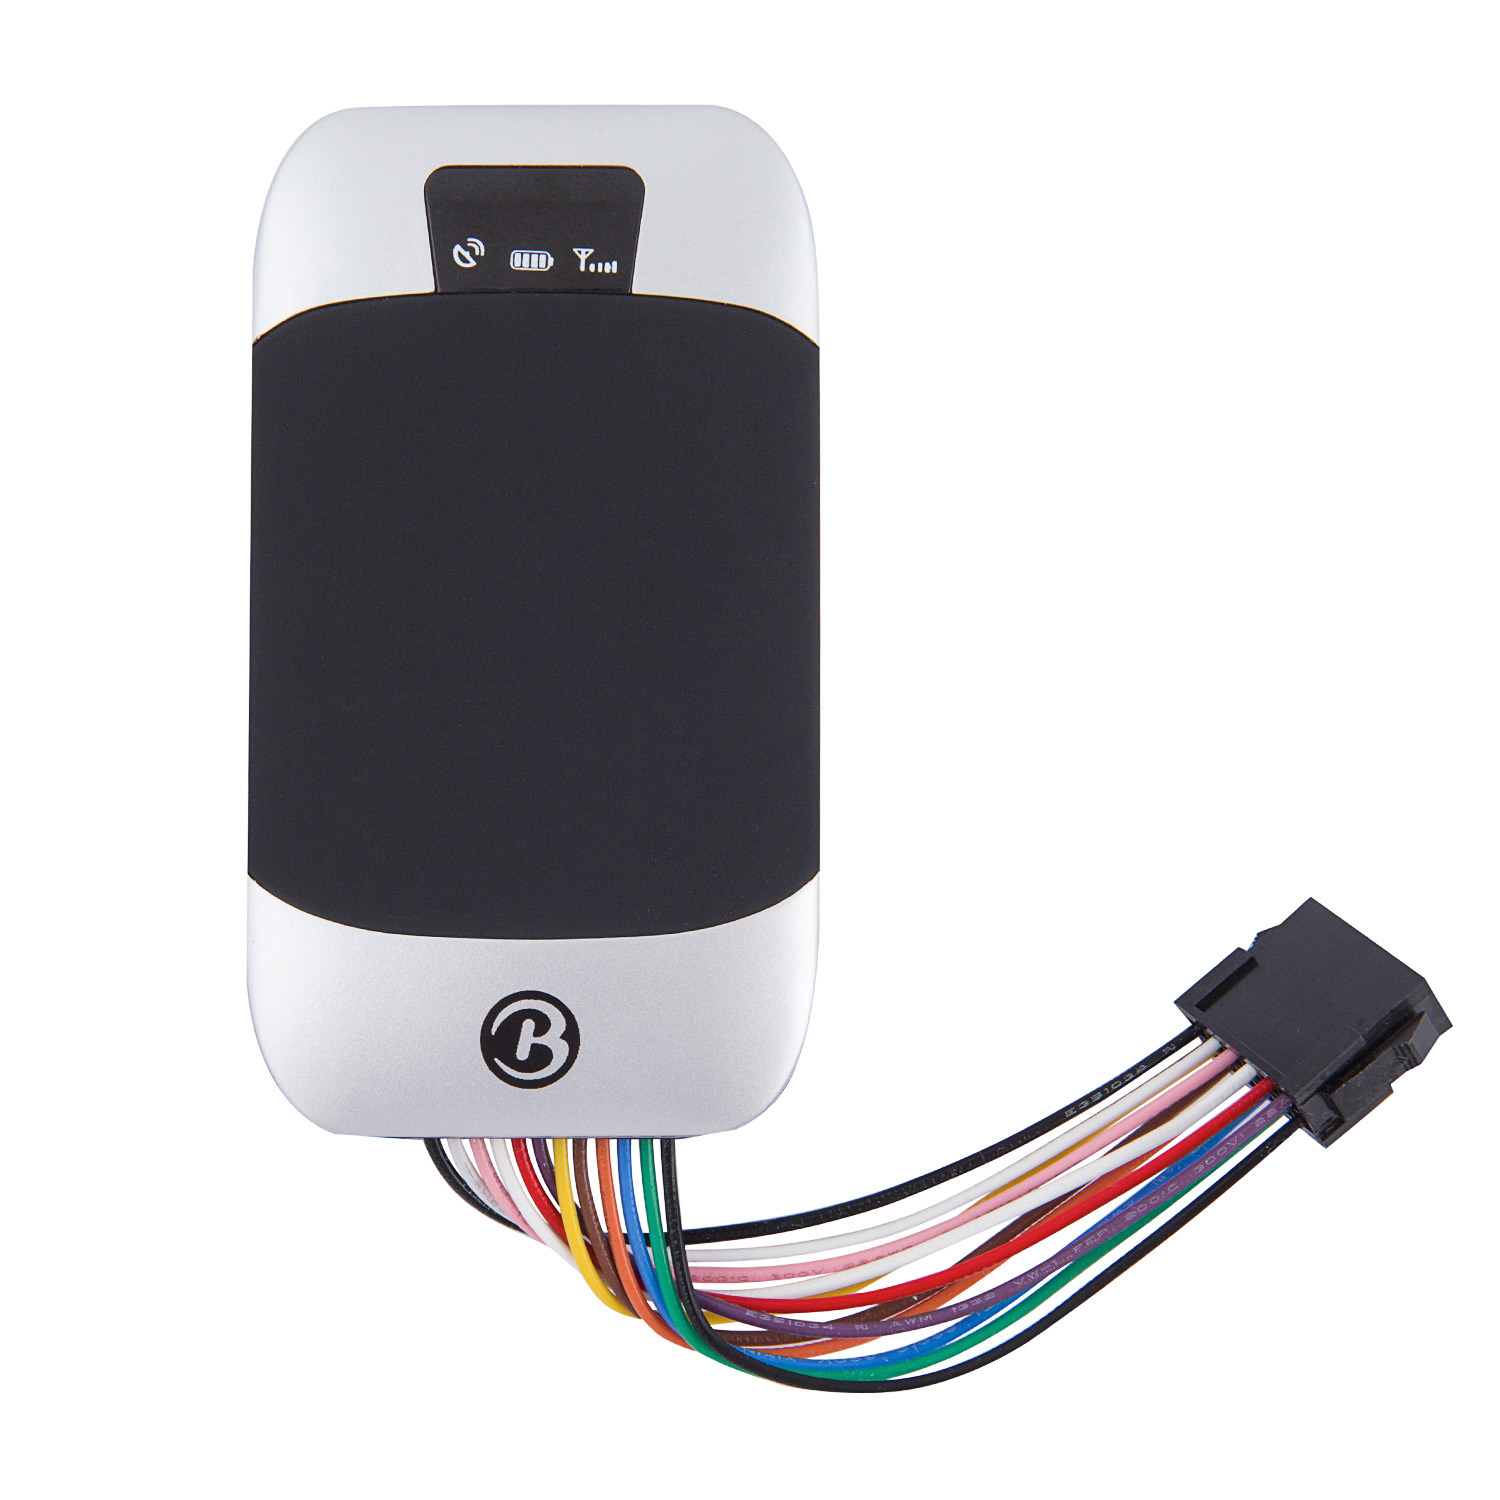 Multinational Accurate Vehicle Tracker Manual GPS Tracker 303f with